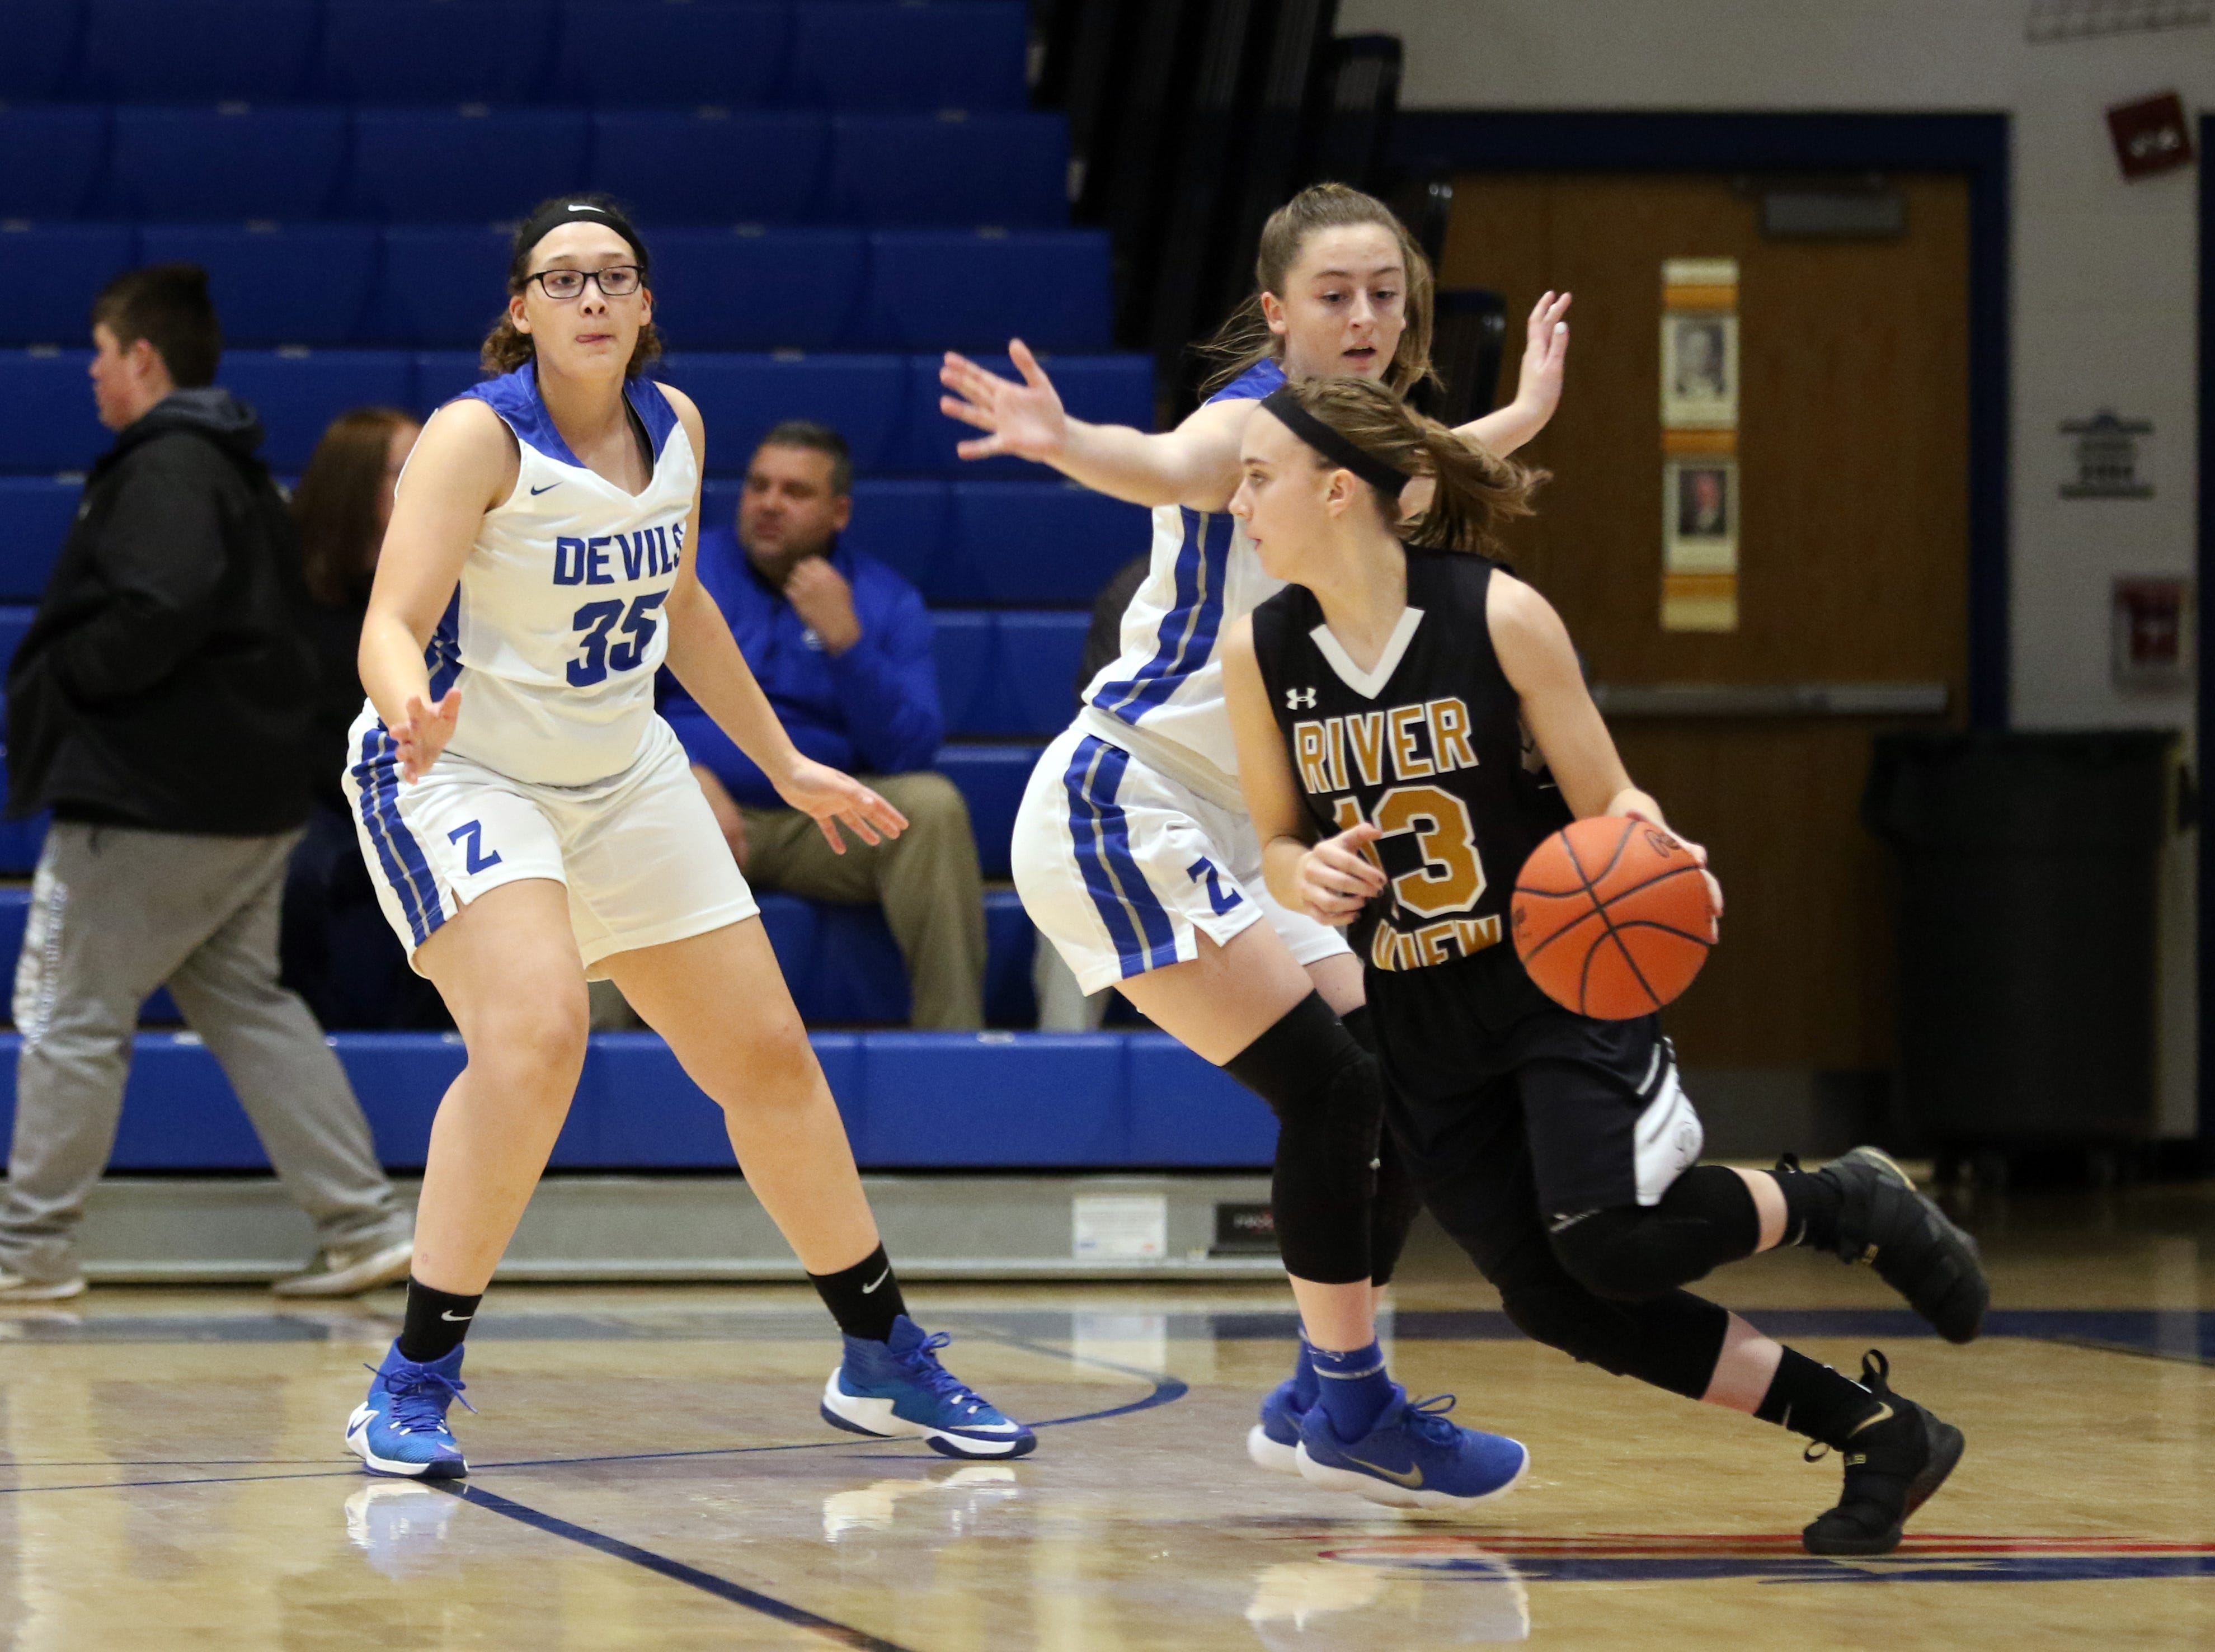 River View's Kelsey Hartsock moves with the ball against Zanesville.